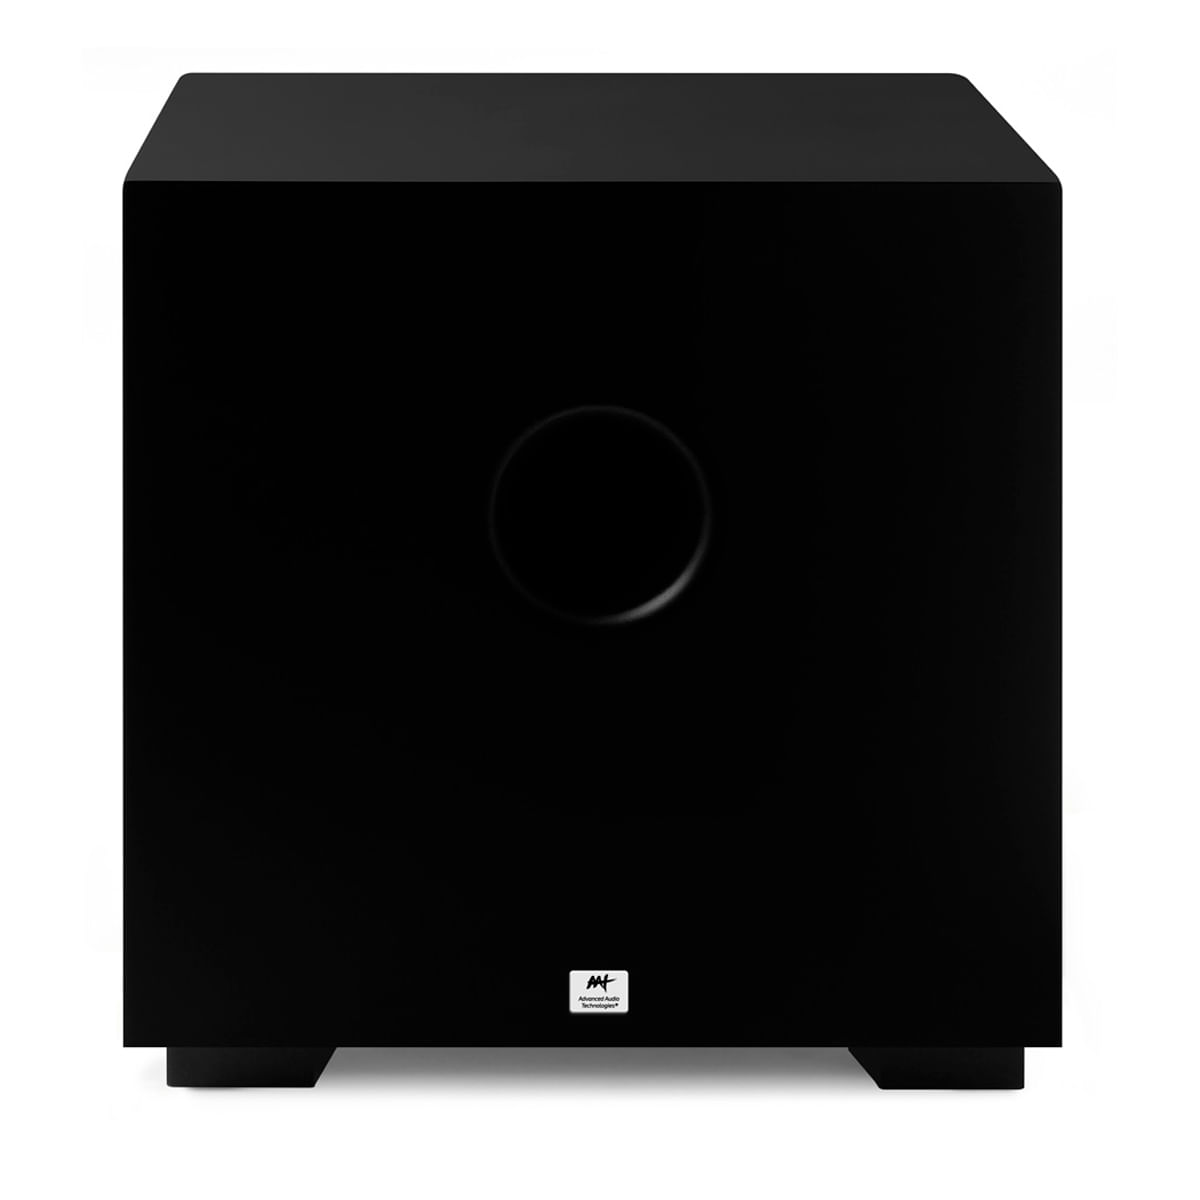 Aat-Compact-Cube-Preto-Frontal